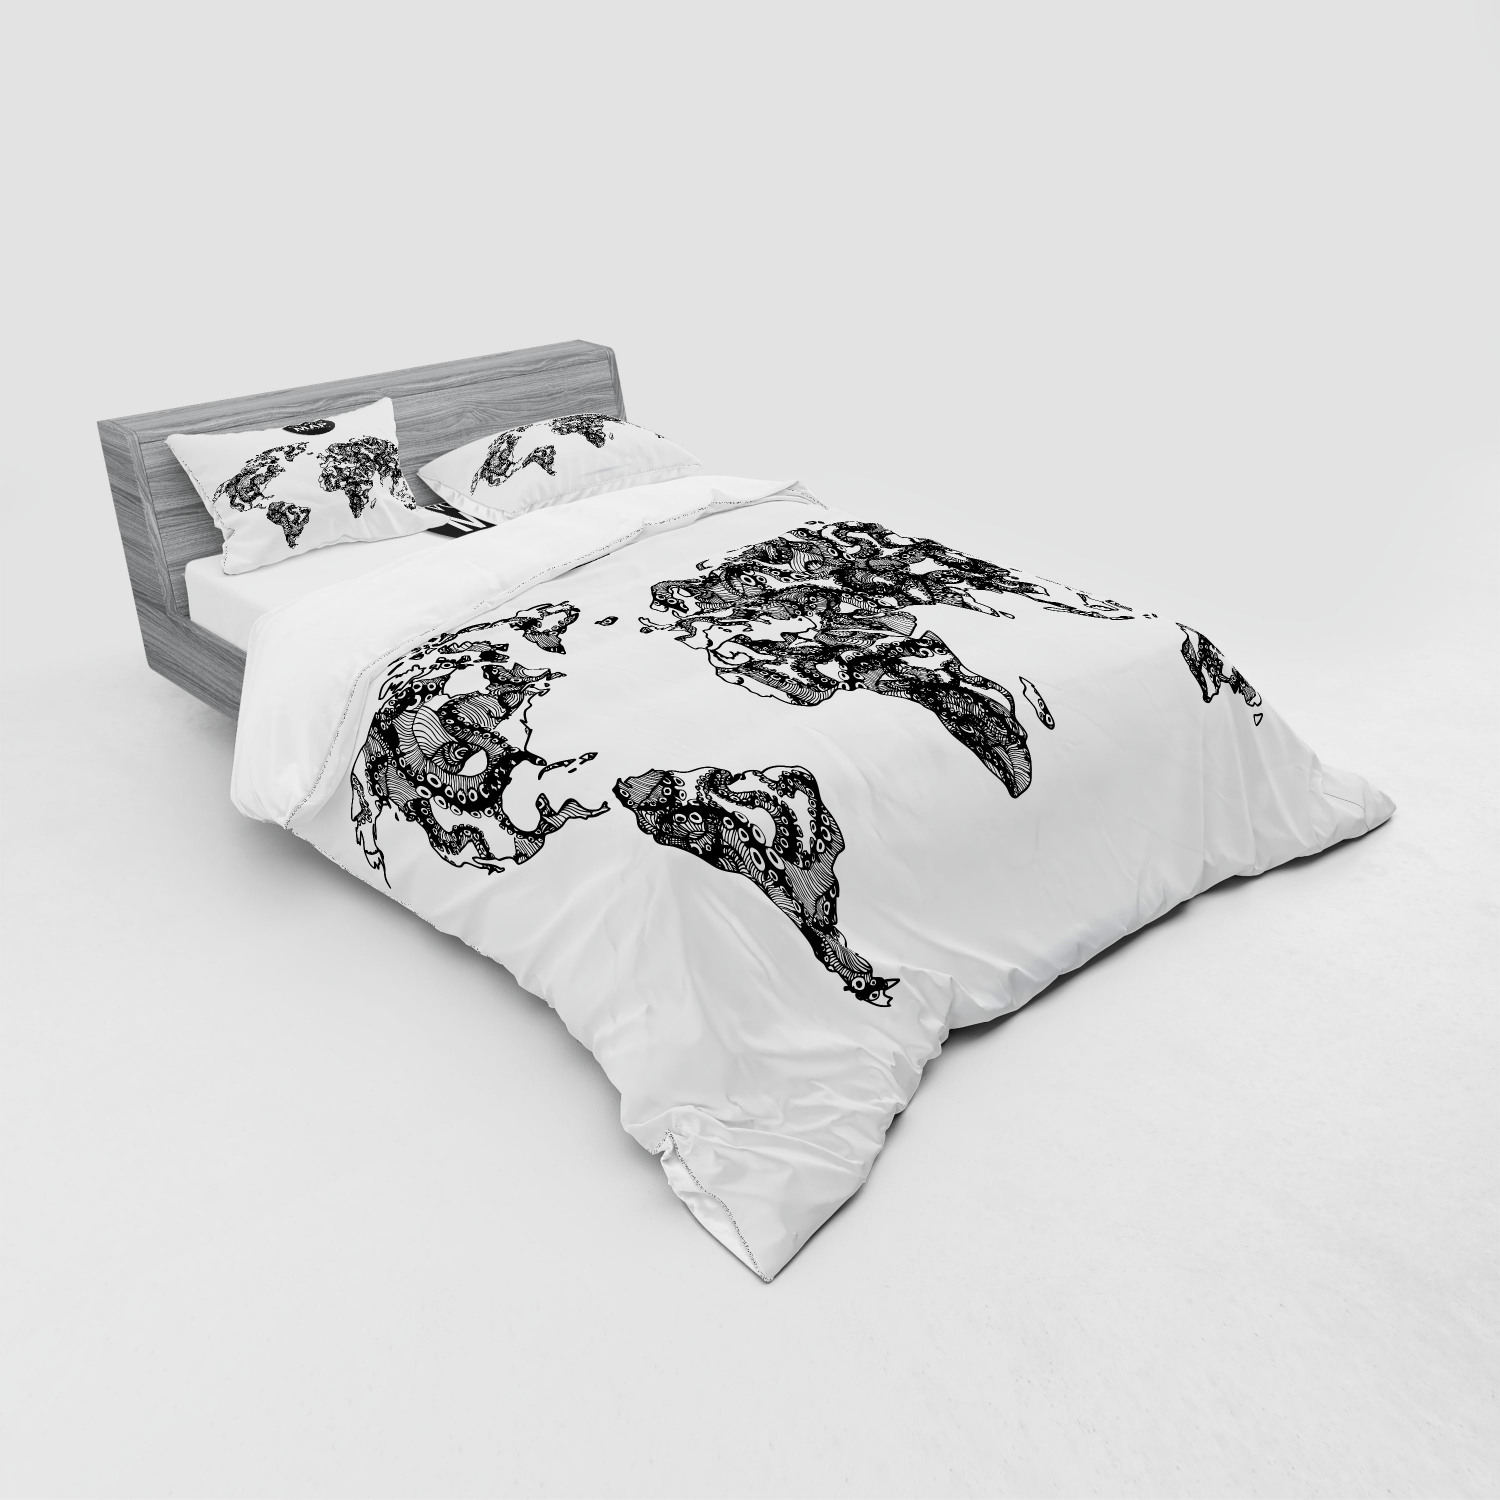 thumbnail 151 - Ambesonne Black White Art Bedding Set Duvet Cover Sham Fitted Sheet in 3 Sizes